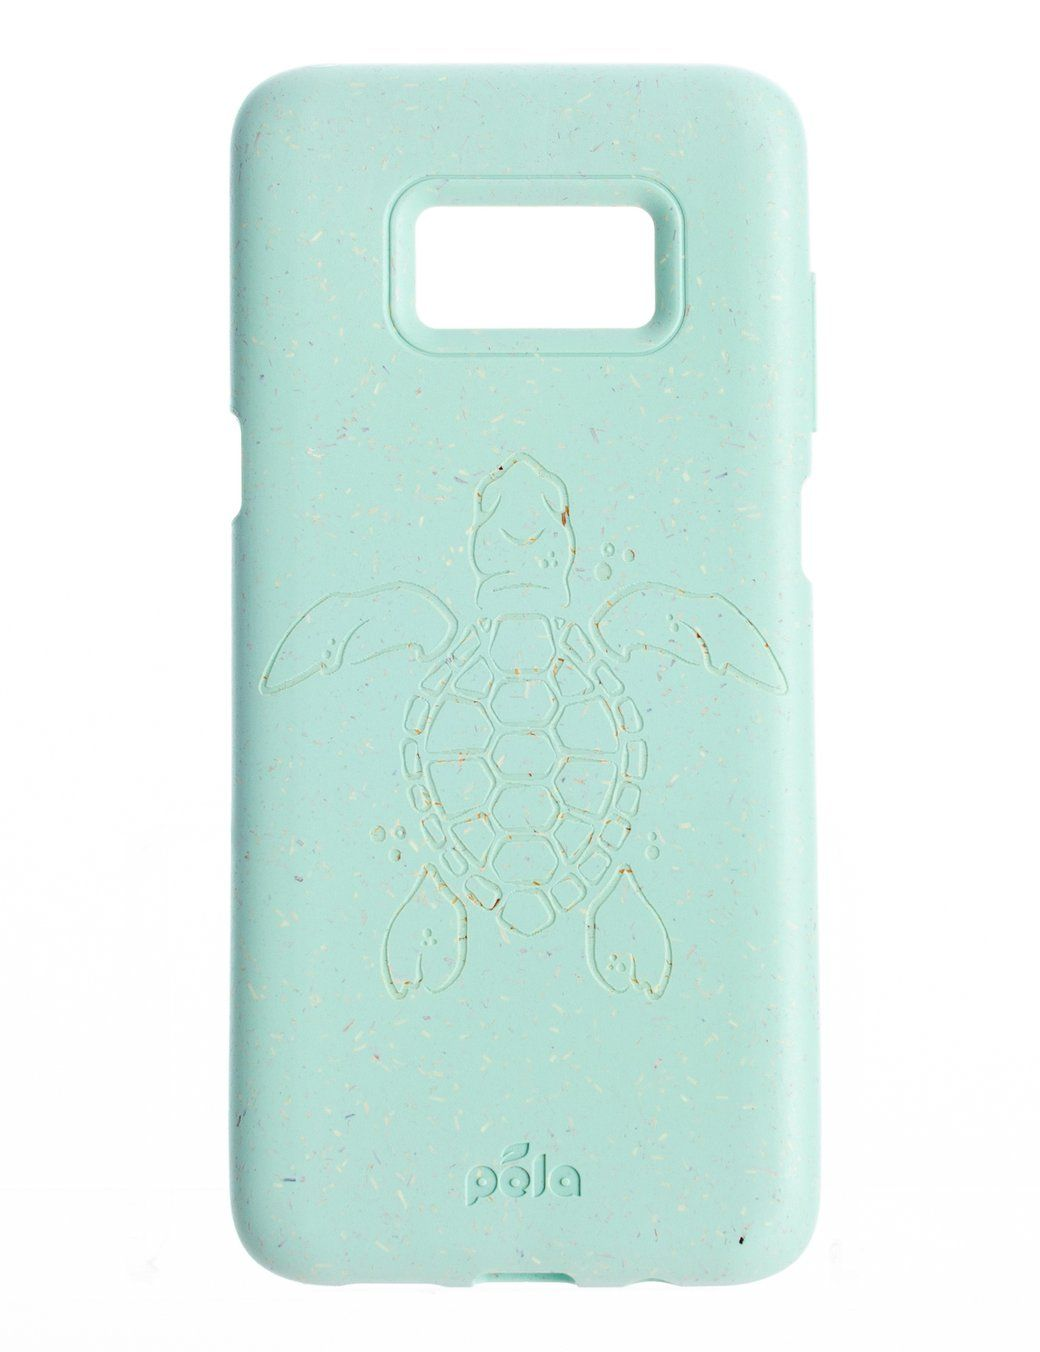 Ocean Turquoise (Turtle Edition) Samsung S8 Eco-Friendly Phone Case  - 100% Biodegradable